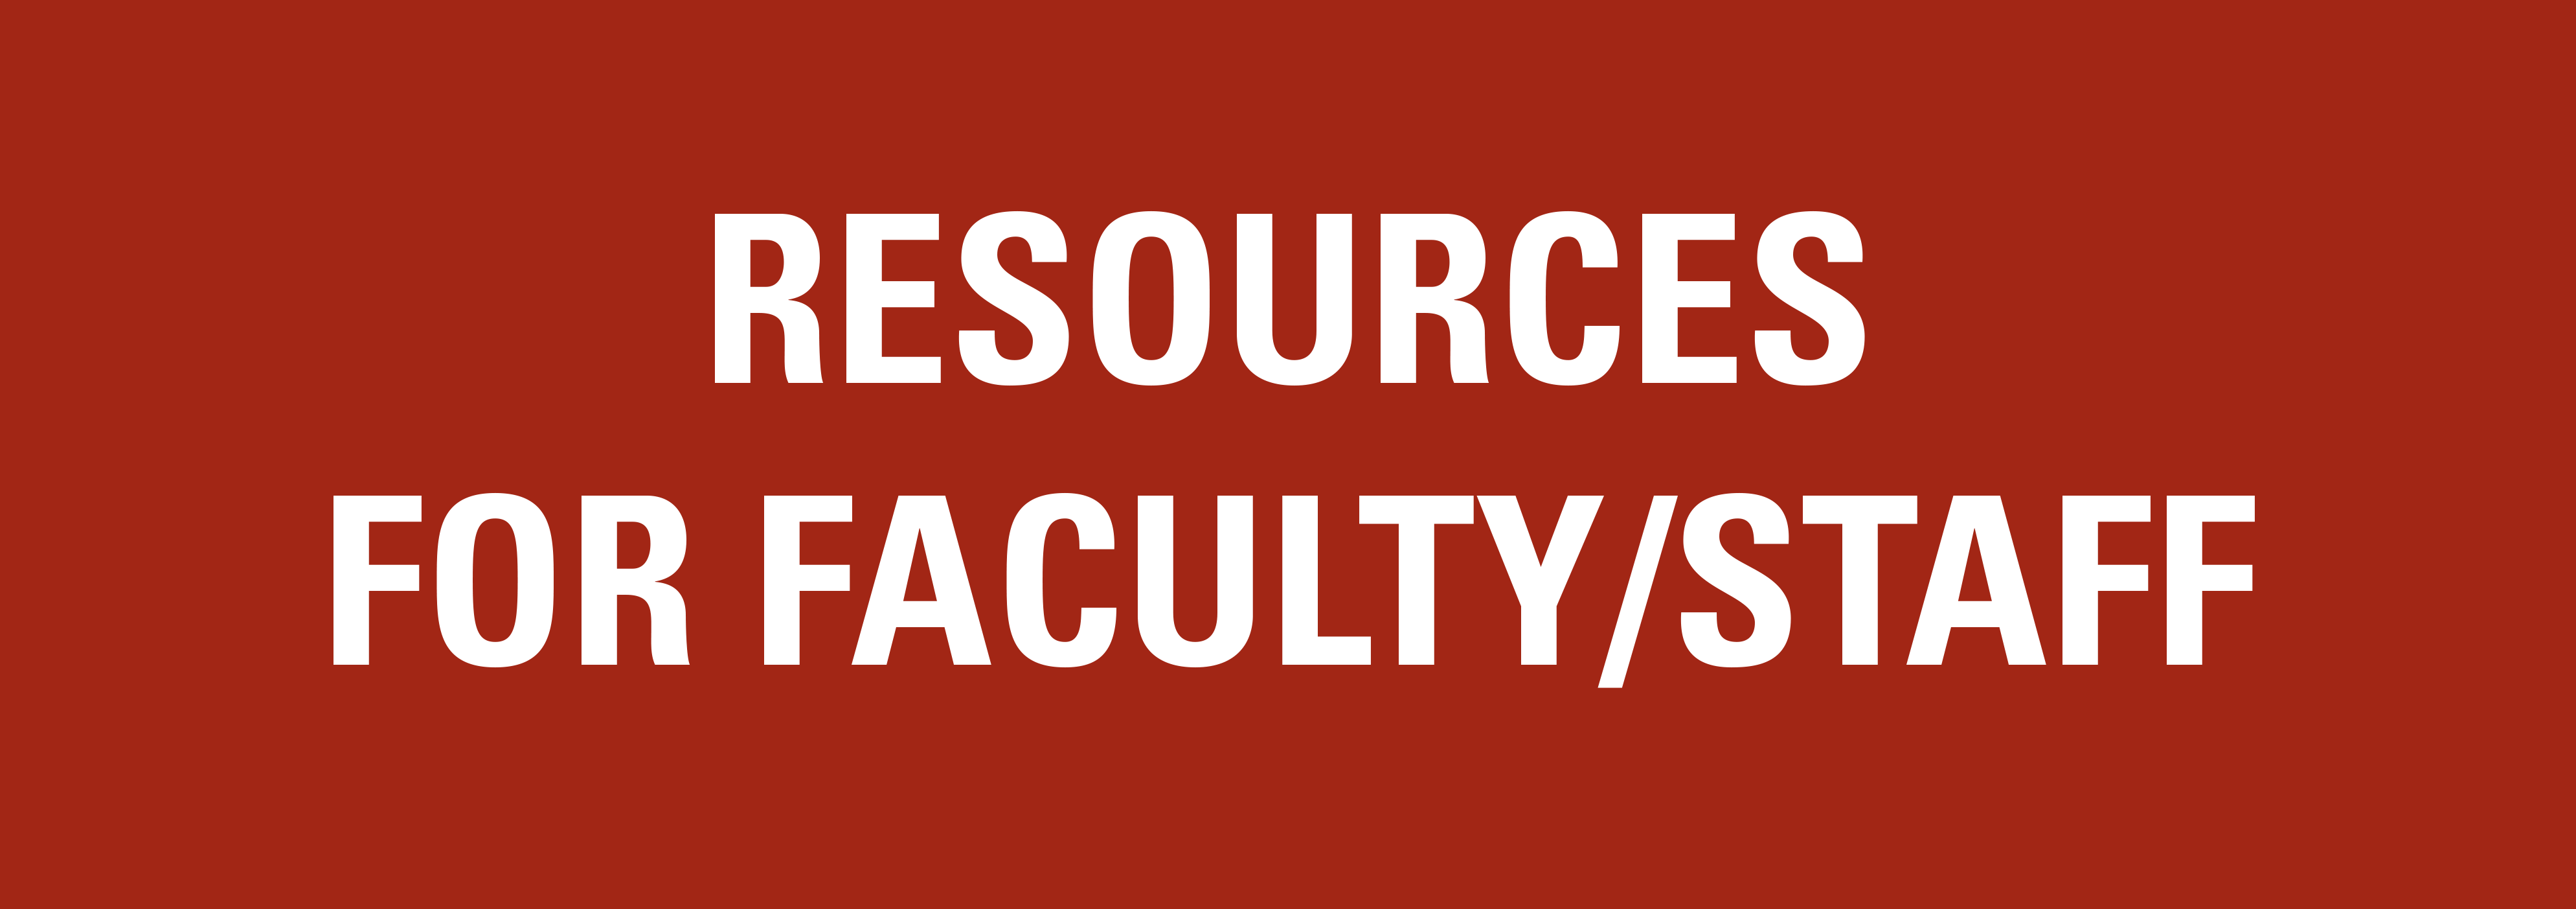 Resources for Faculty/Staff